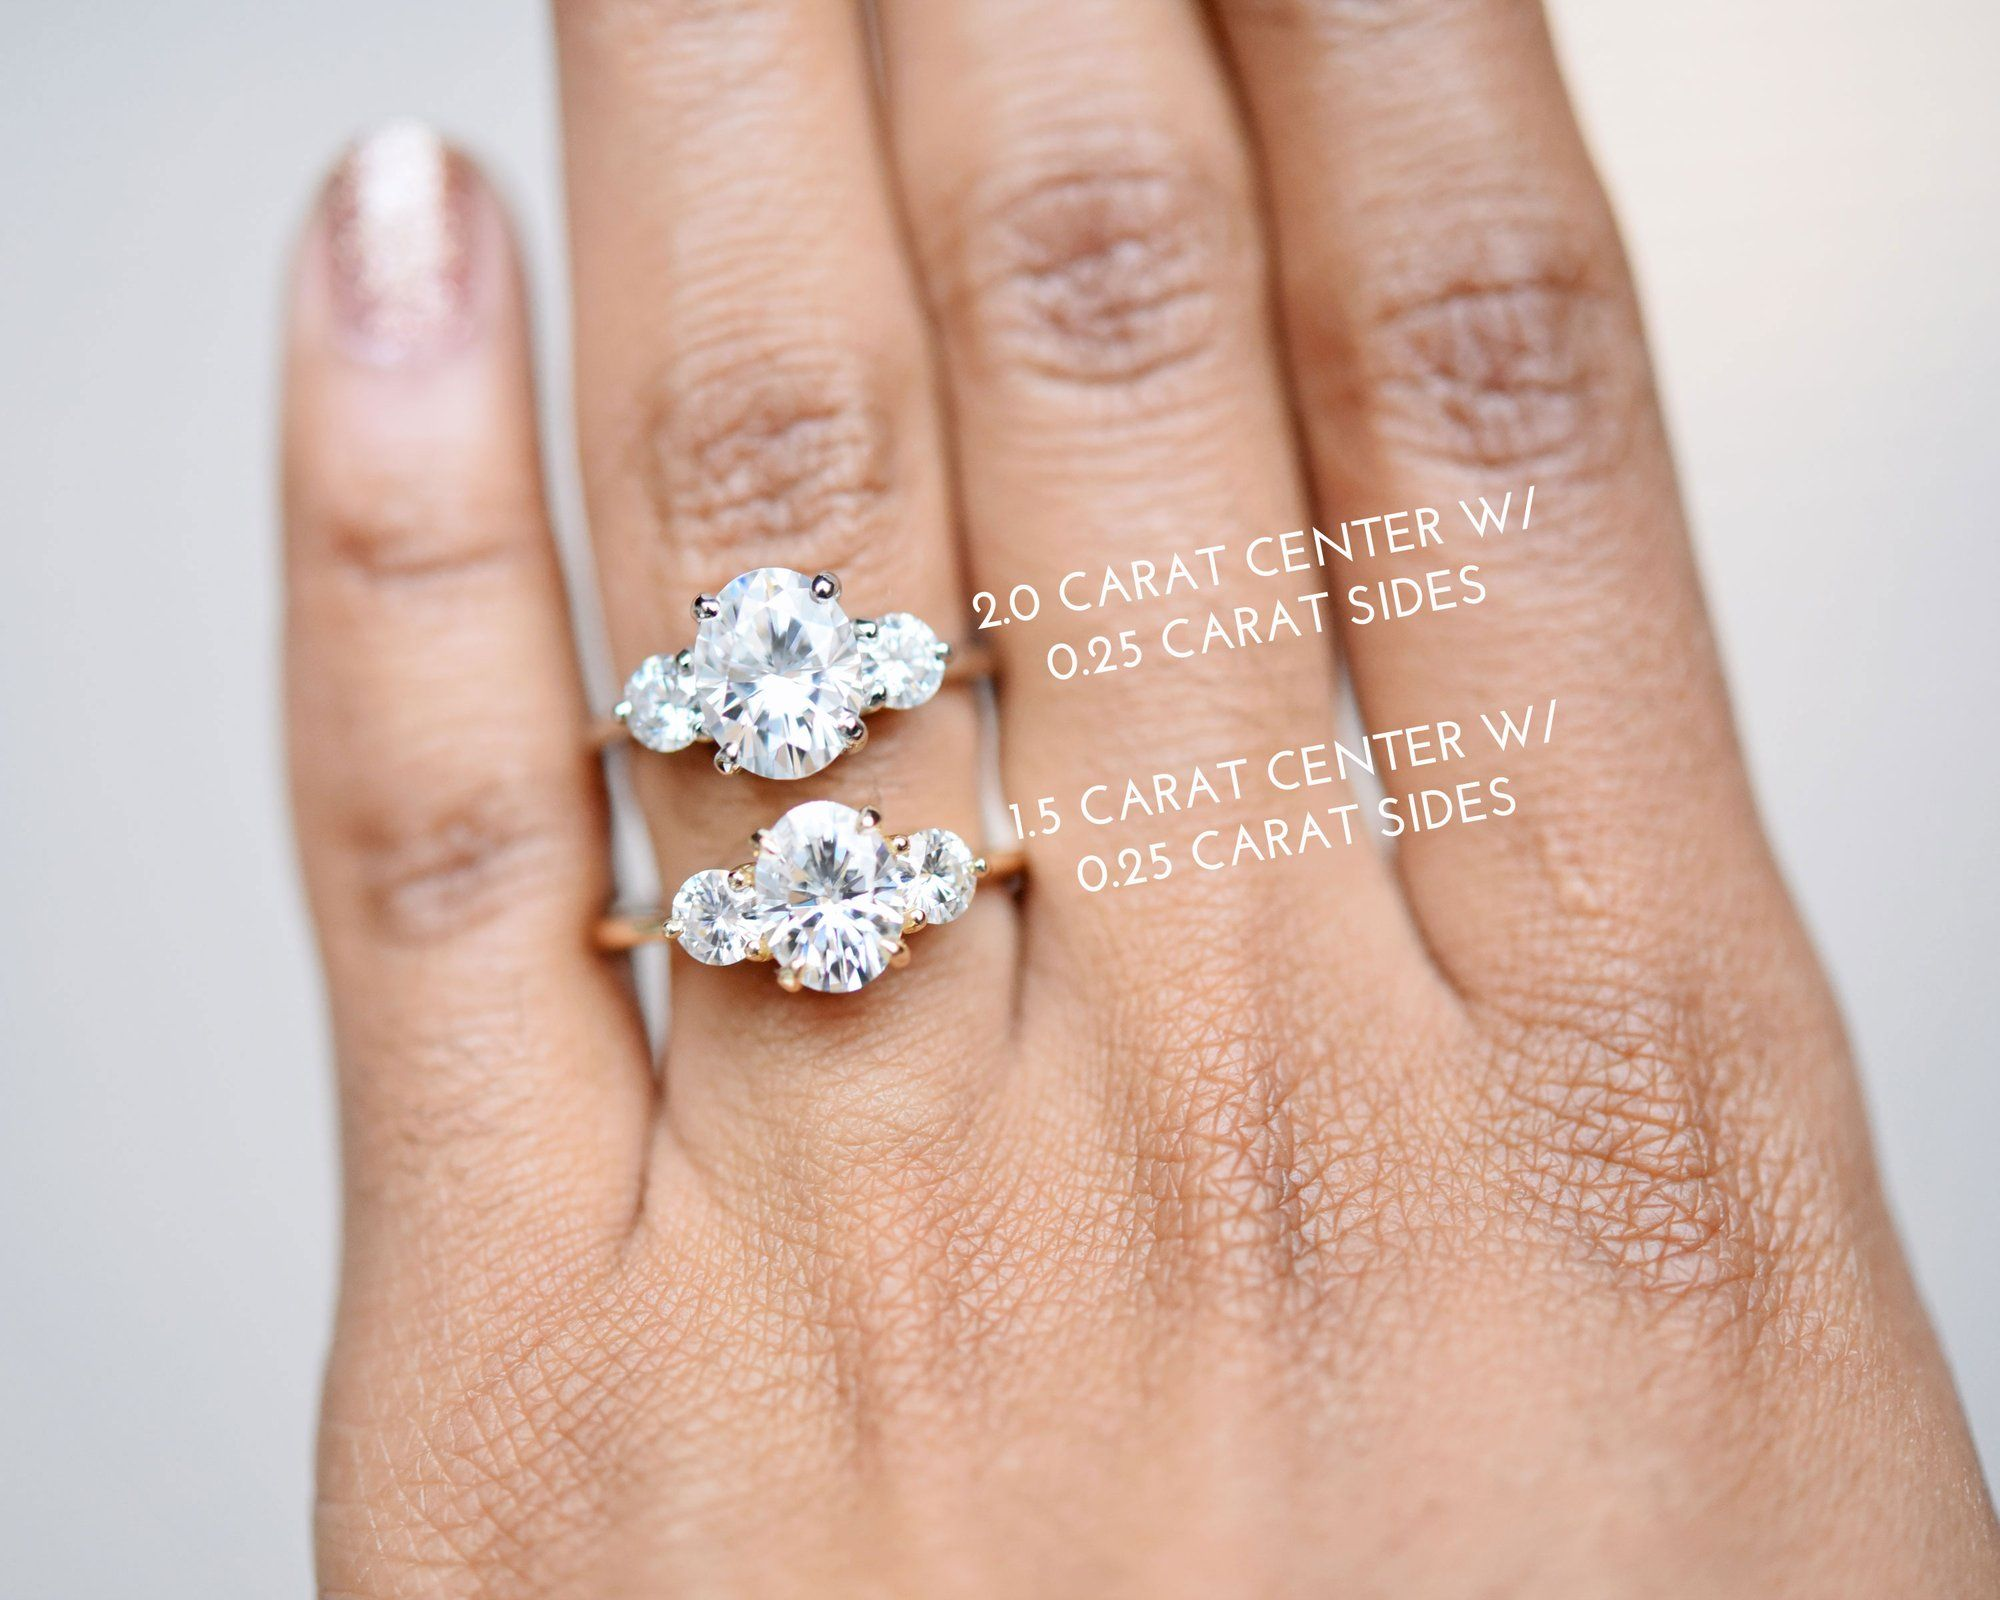 Zara Oval Three Stone Moissanite Engagement Ring Valeri In 2020 Three Stone Engagement Rings Oval Three Stone Diamond Rings Engagement Three Stone Diamond Engagement